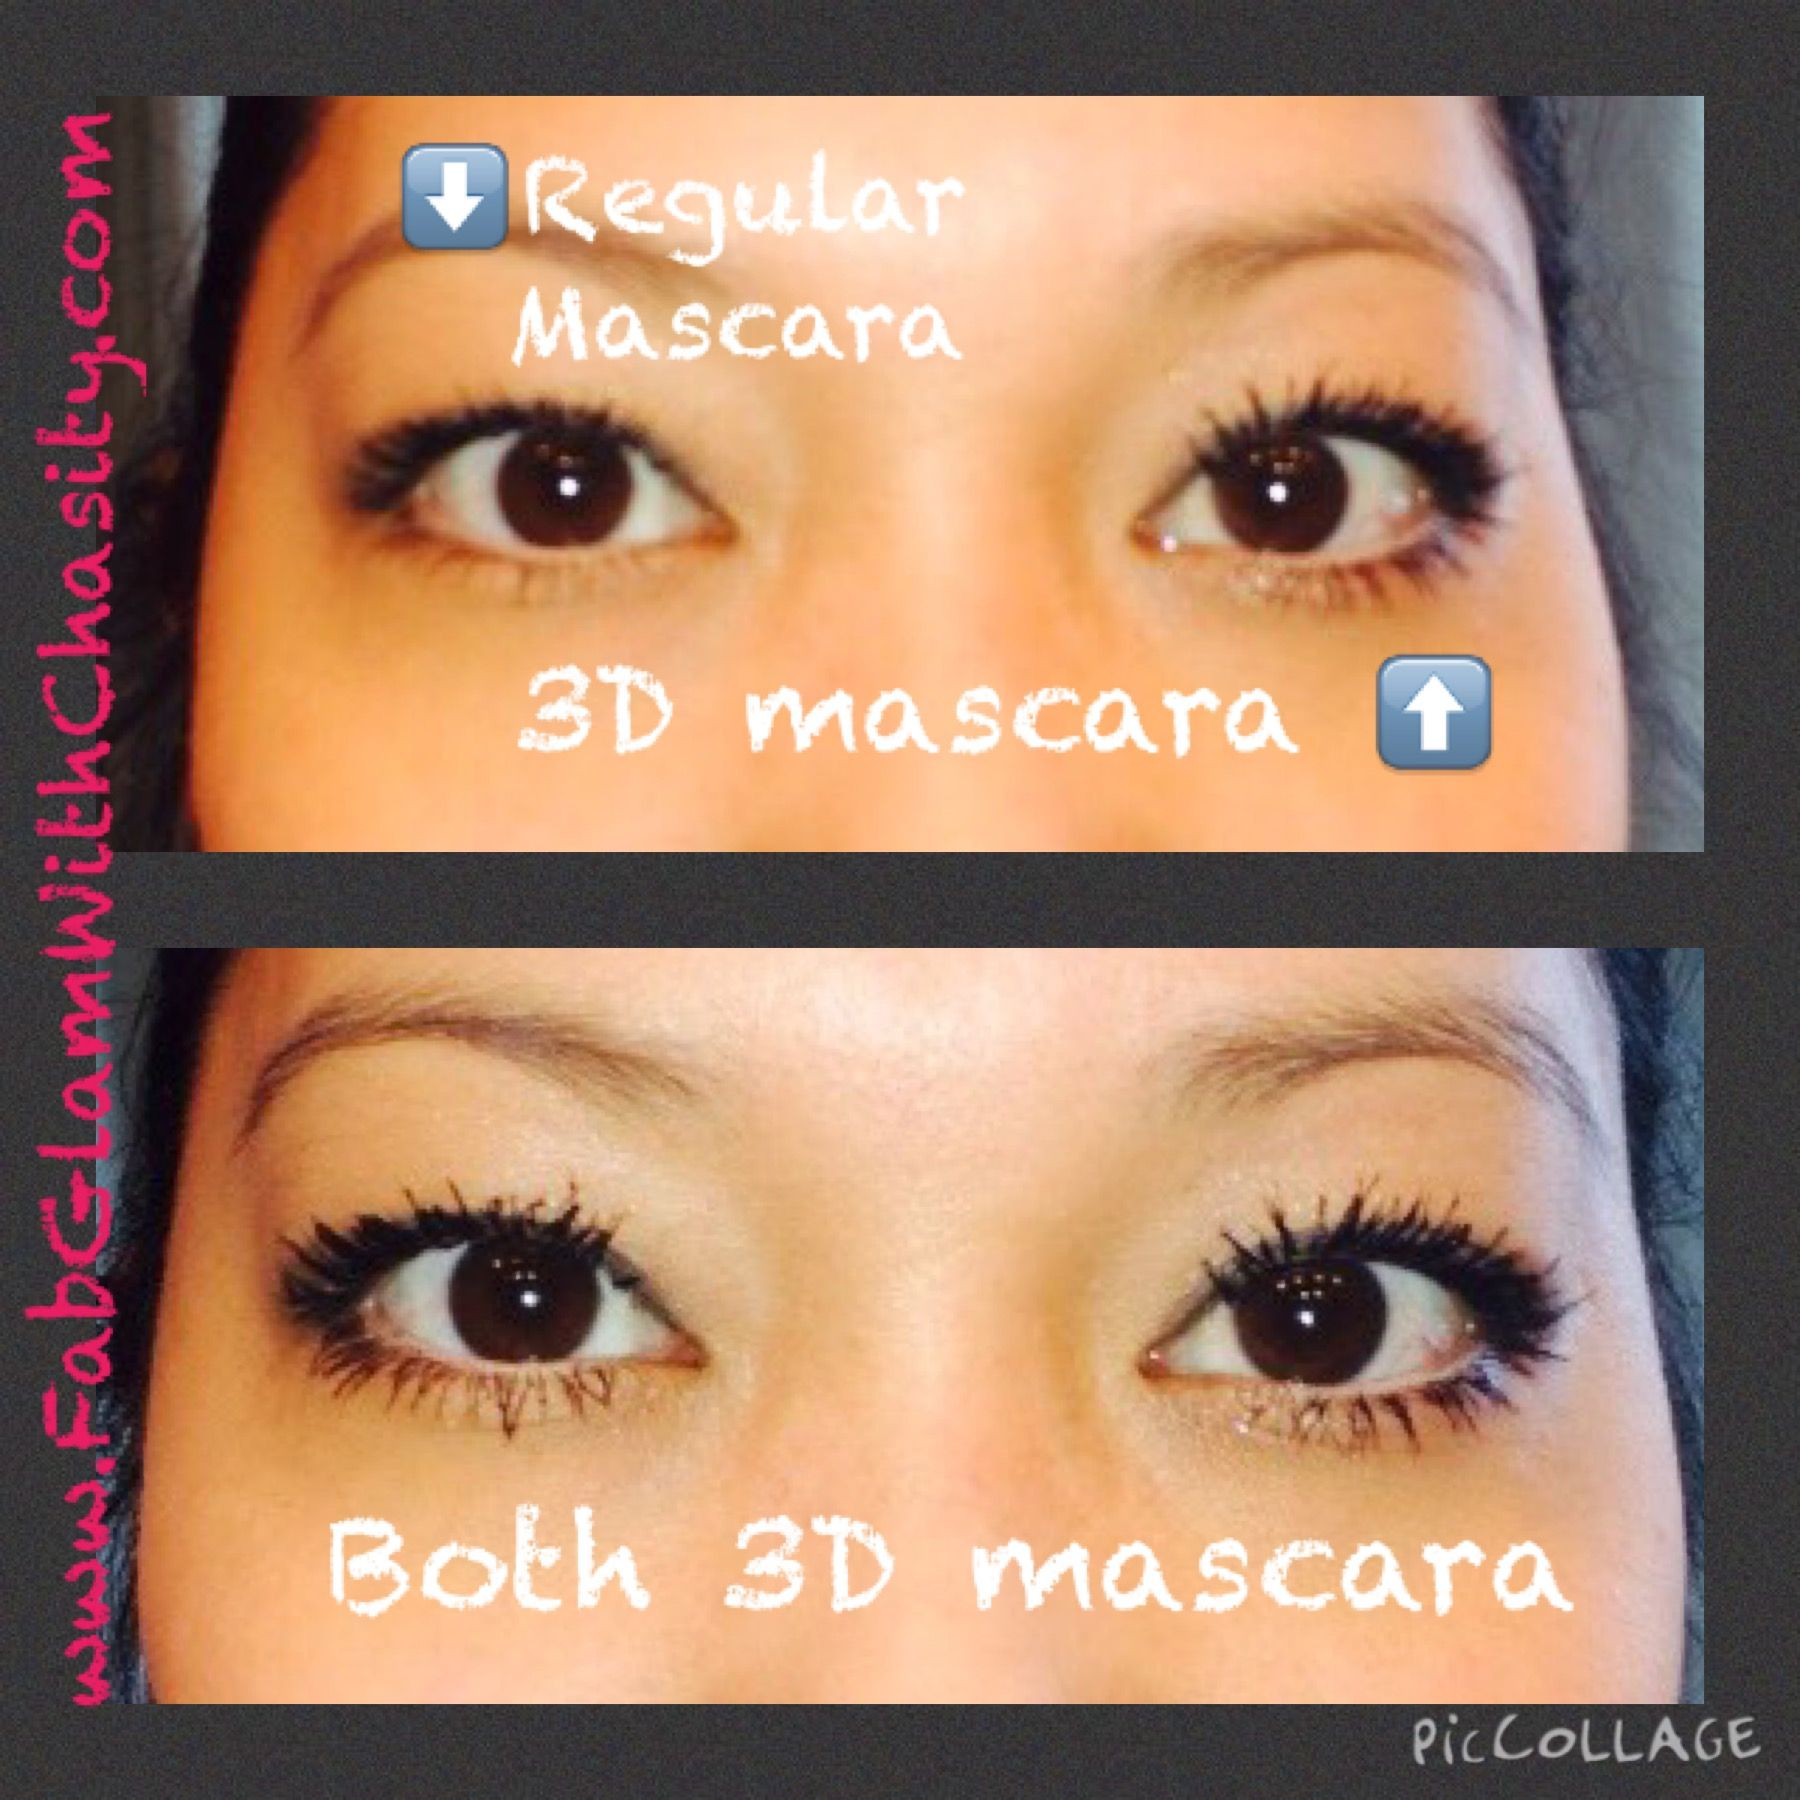 1b13ba09441 I used a new over the counter mascara Loreal butterfly effect. Loved how it  separated my lashes. My 3D mascara looked awesome over it!